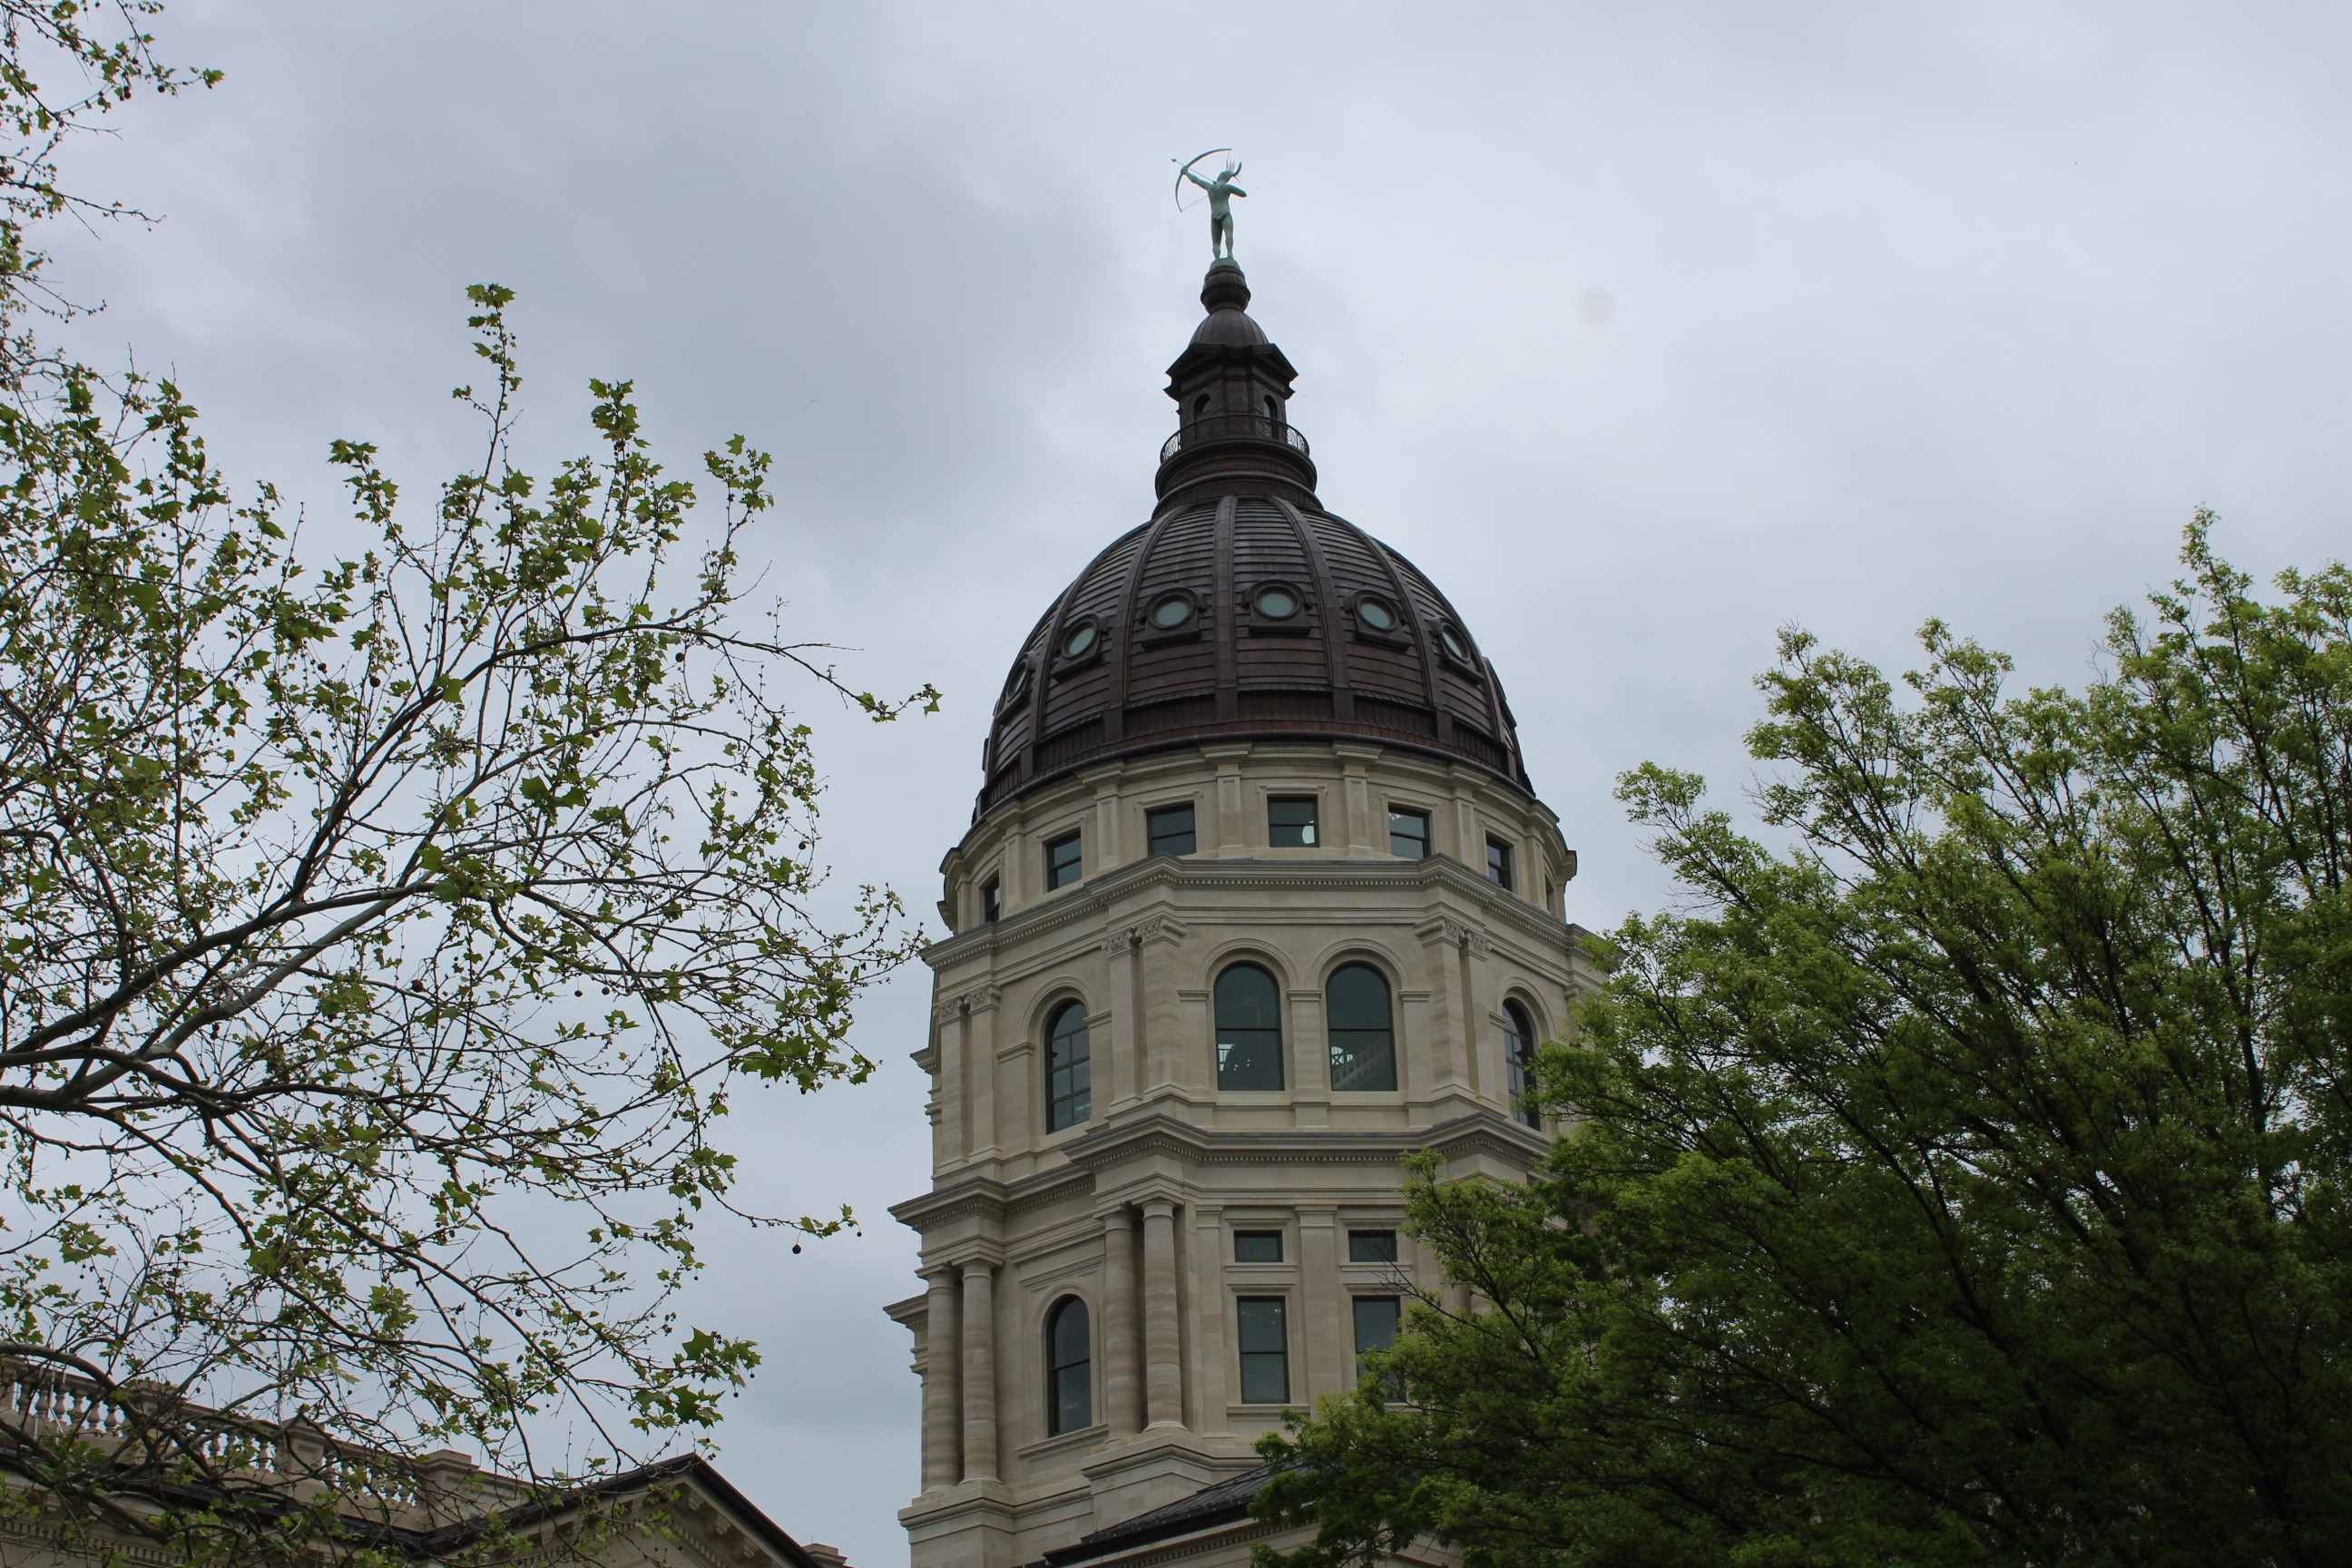 Kansas Statehouse dome towering above the trees (Photo by J. Schafer)